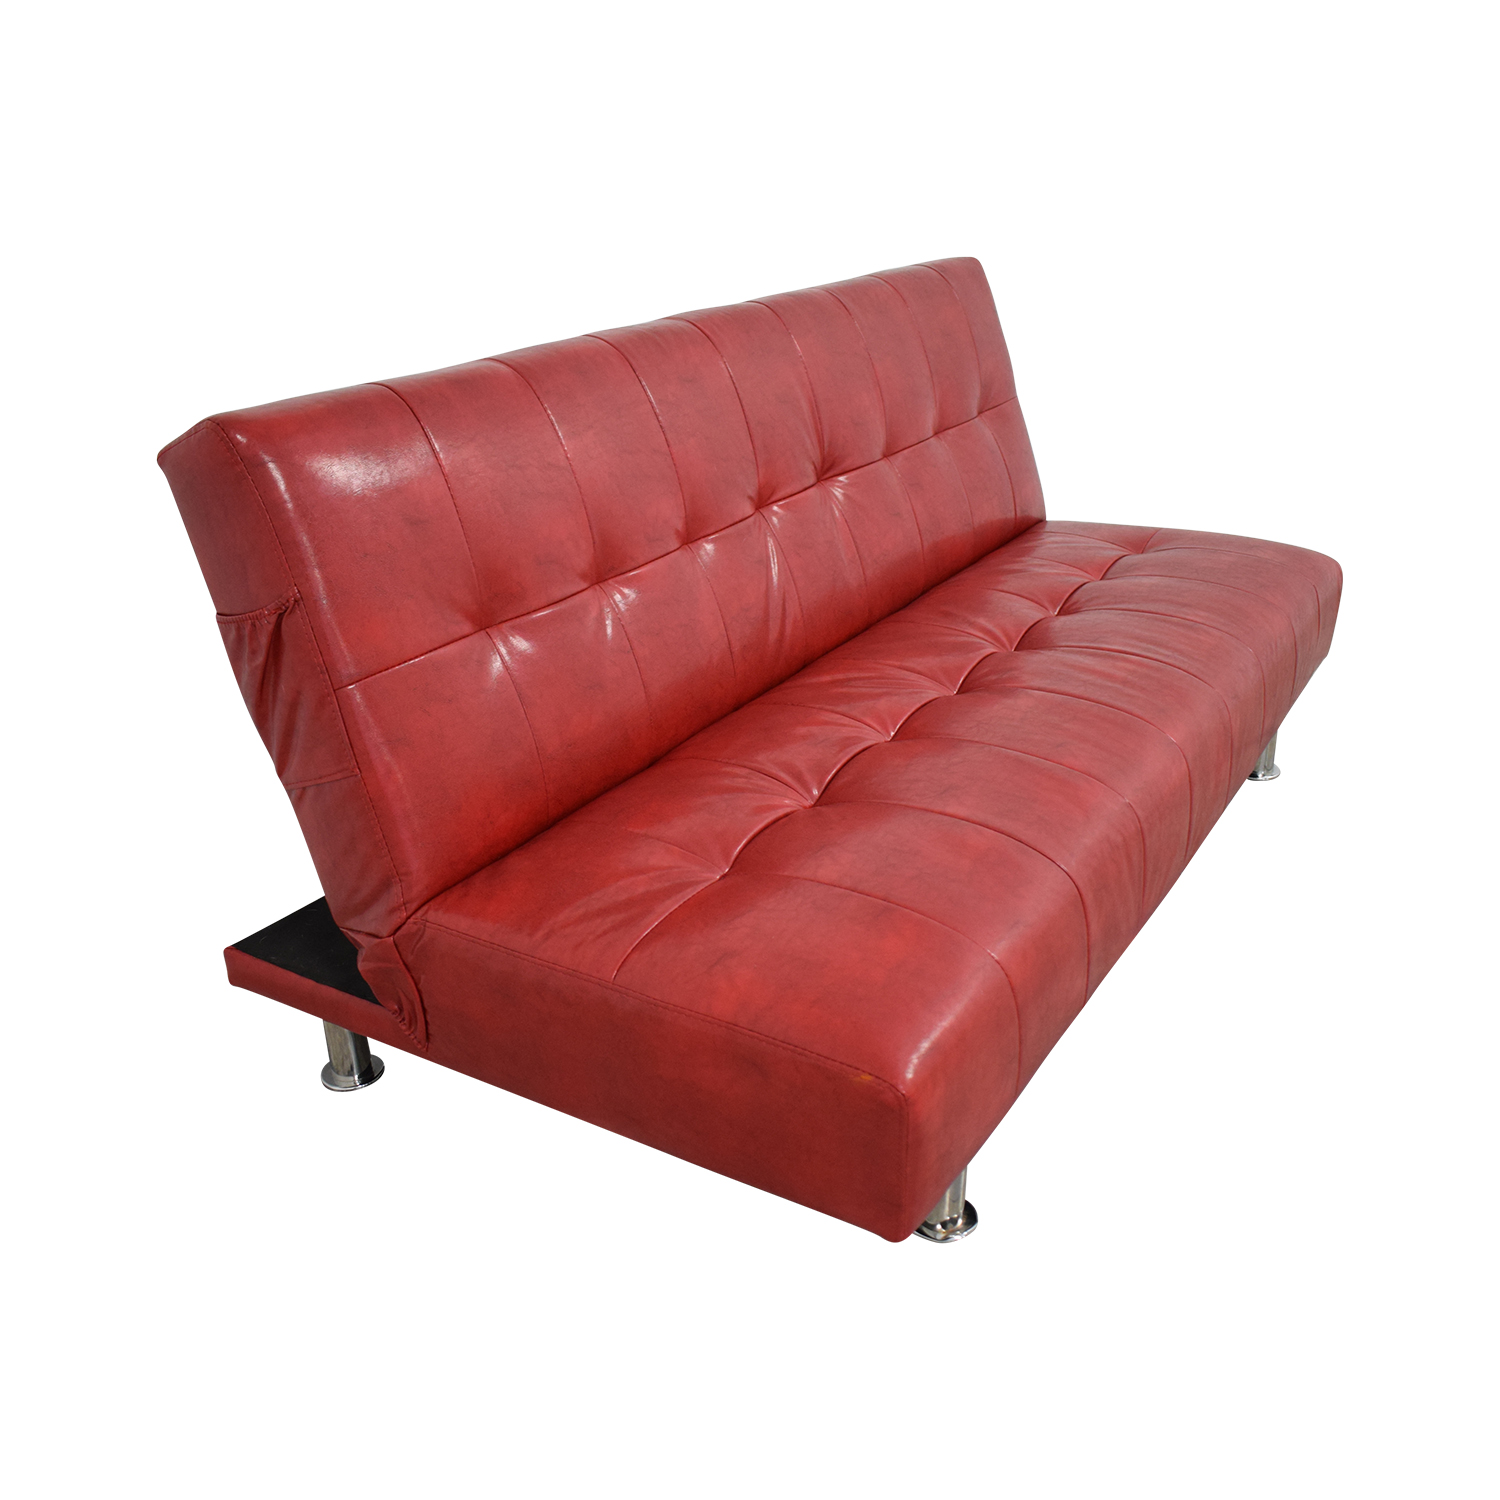 75 Off Macy S Macy S Red Faux Leather Sofa Futon Sofas